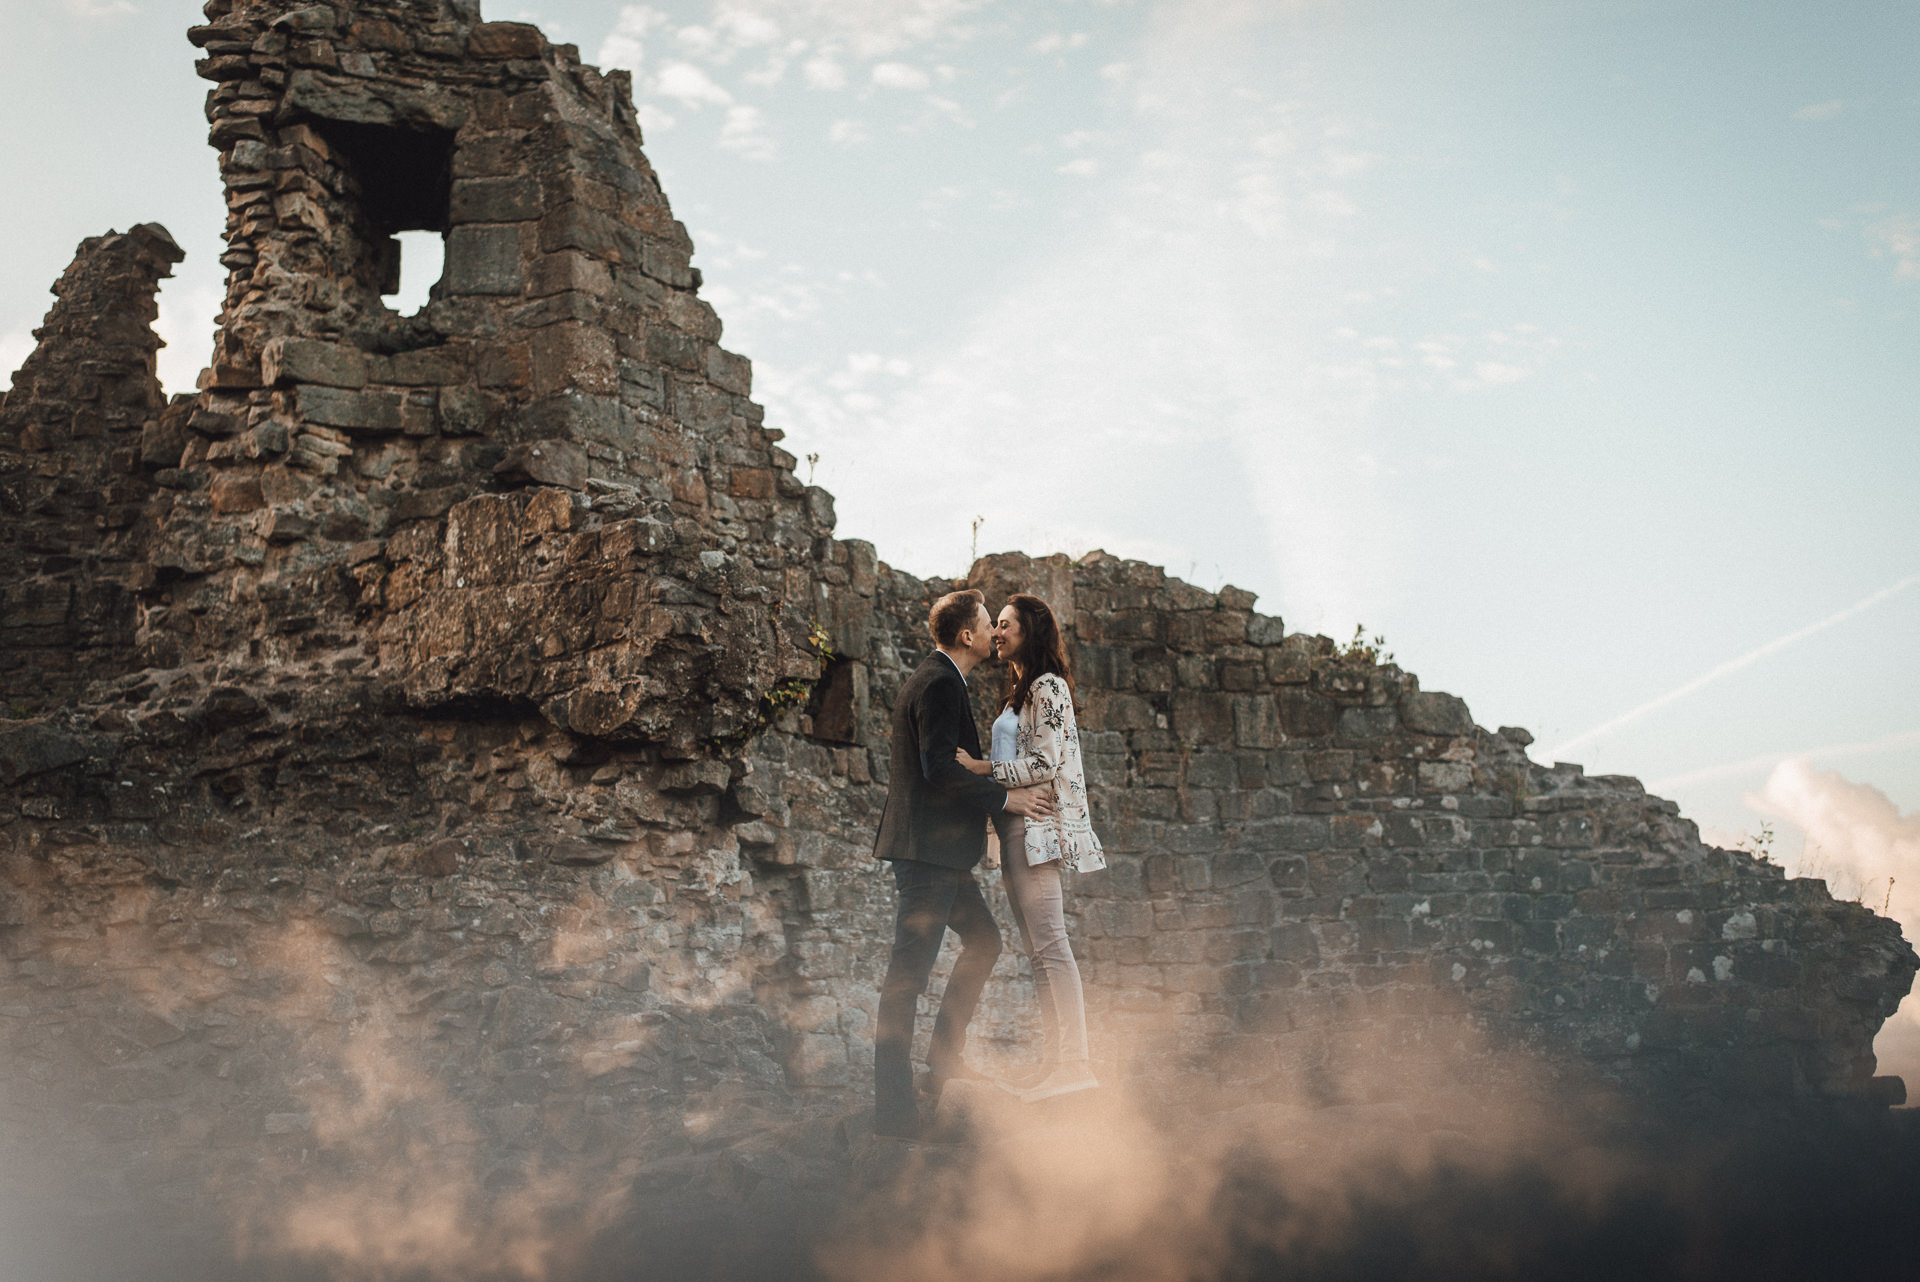 Couple kiss in the middle of castle ruins. Romantic engagement photography ideas.